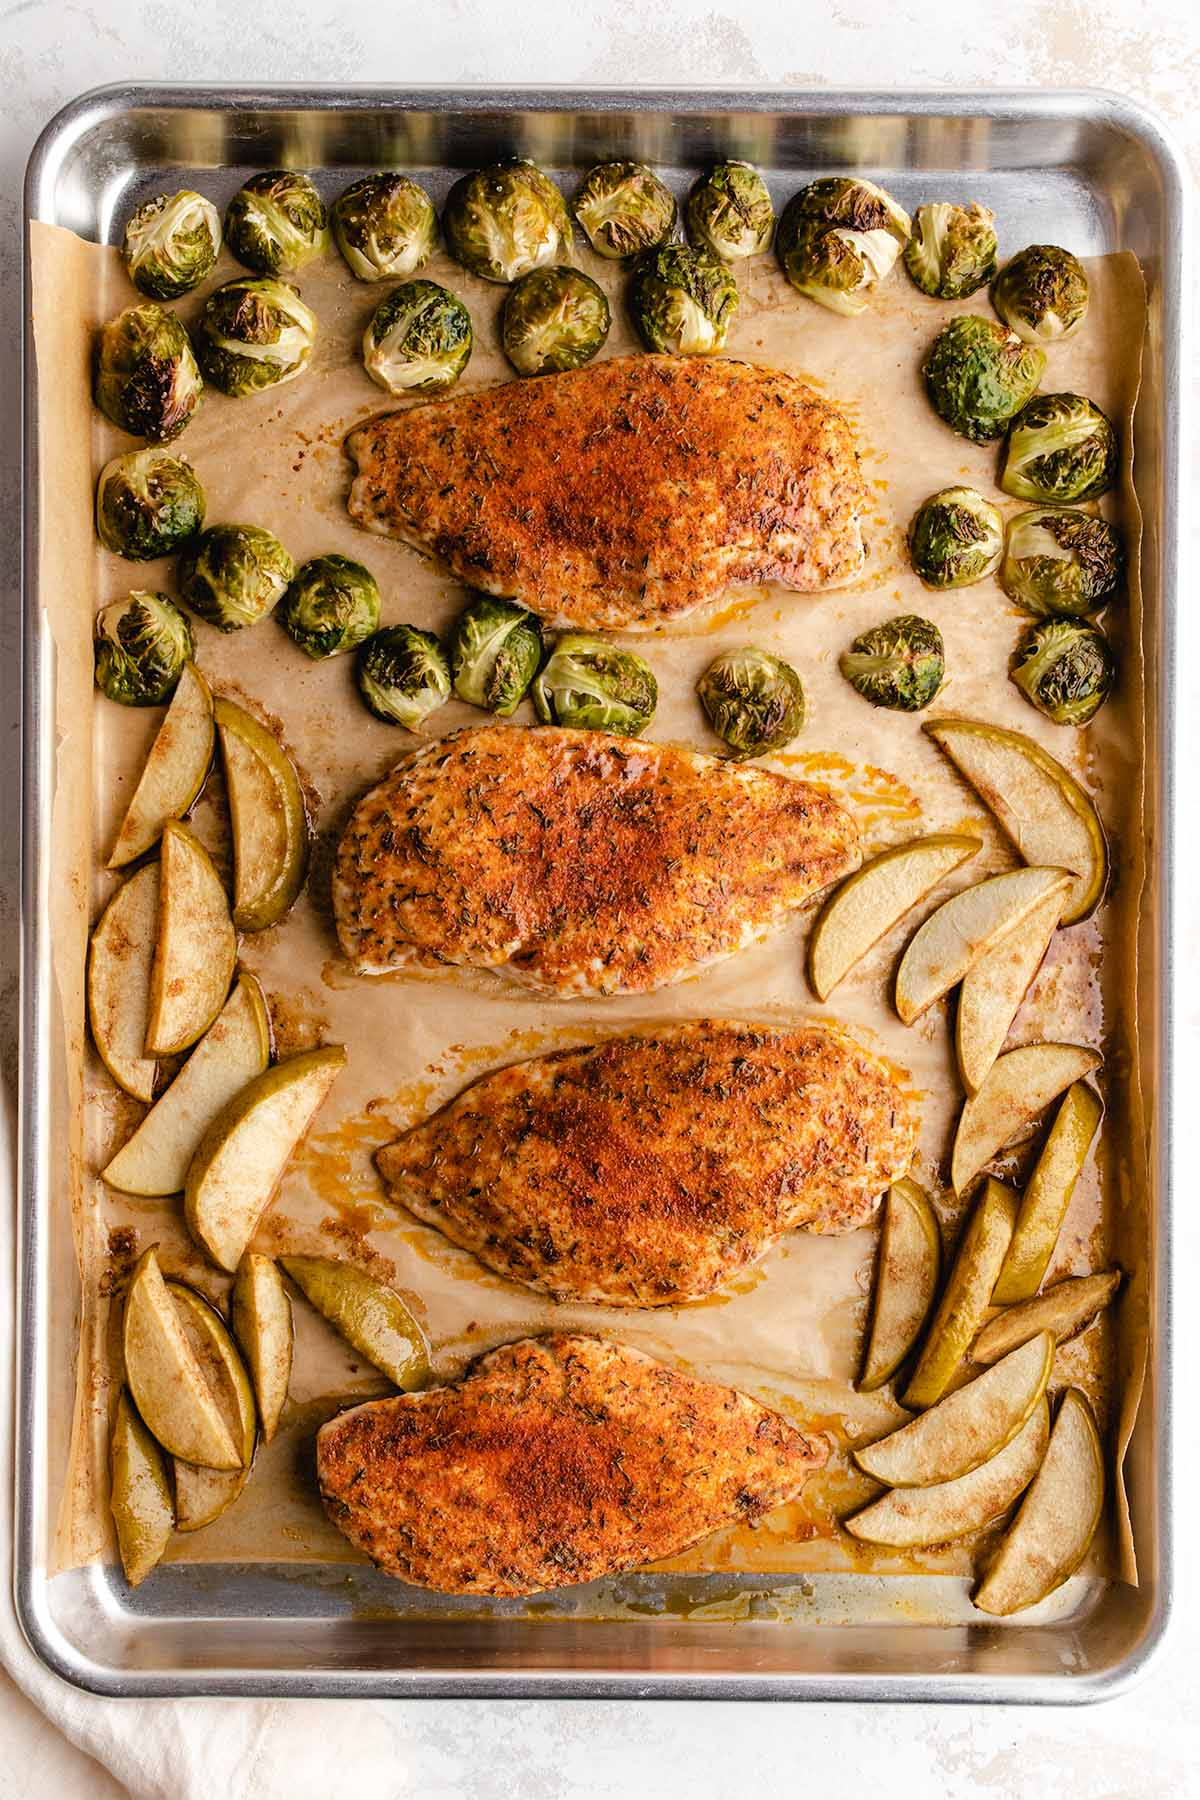 Four roasted chicken breasts with Brussels sprouts and apple slices on a baking sheet.